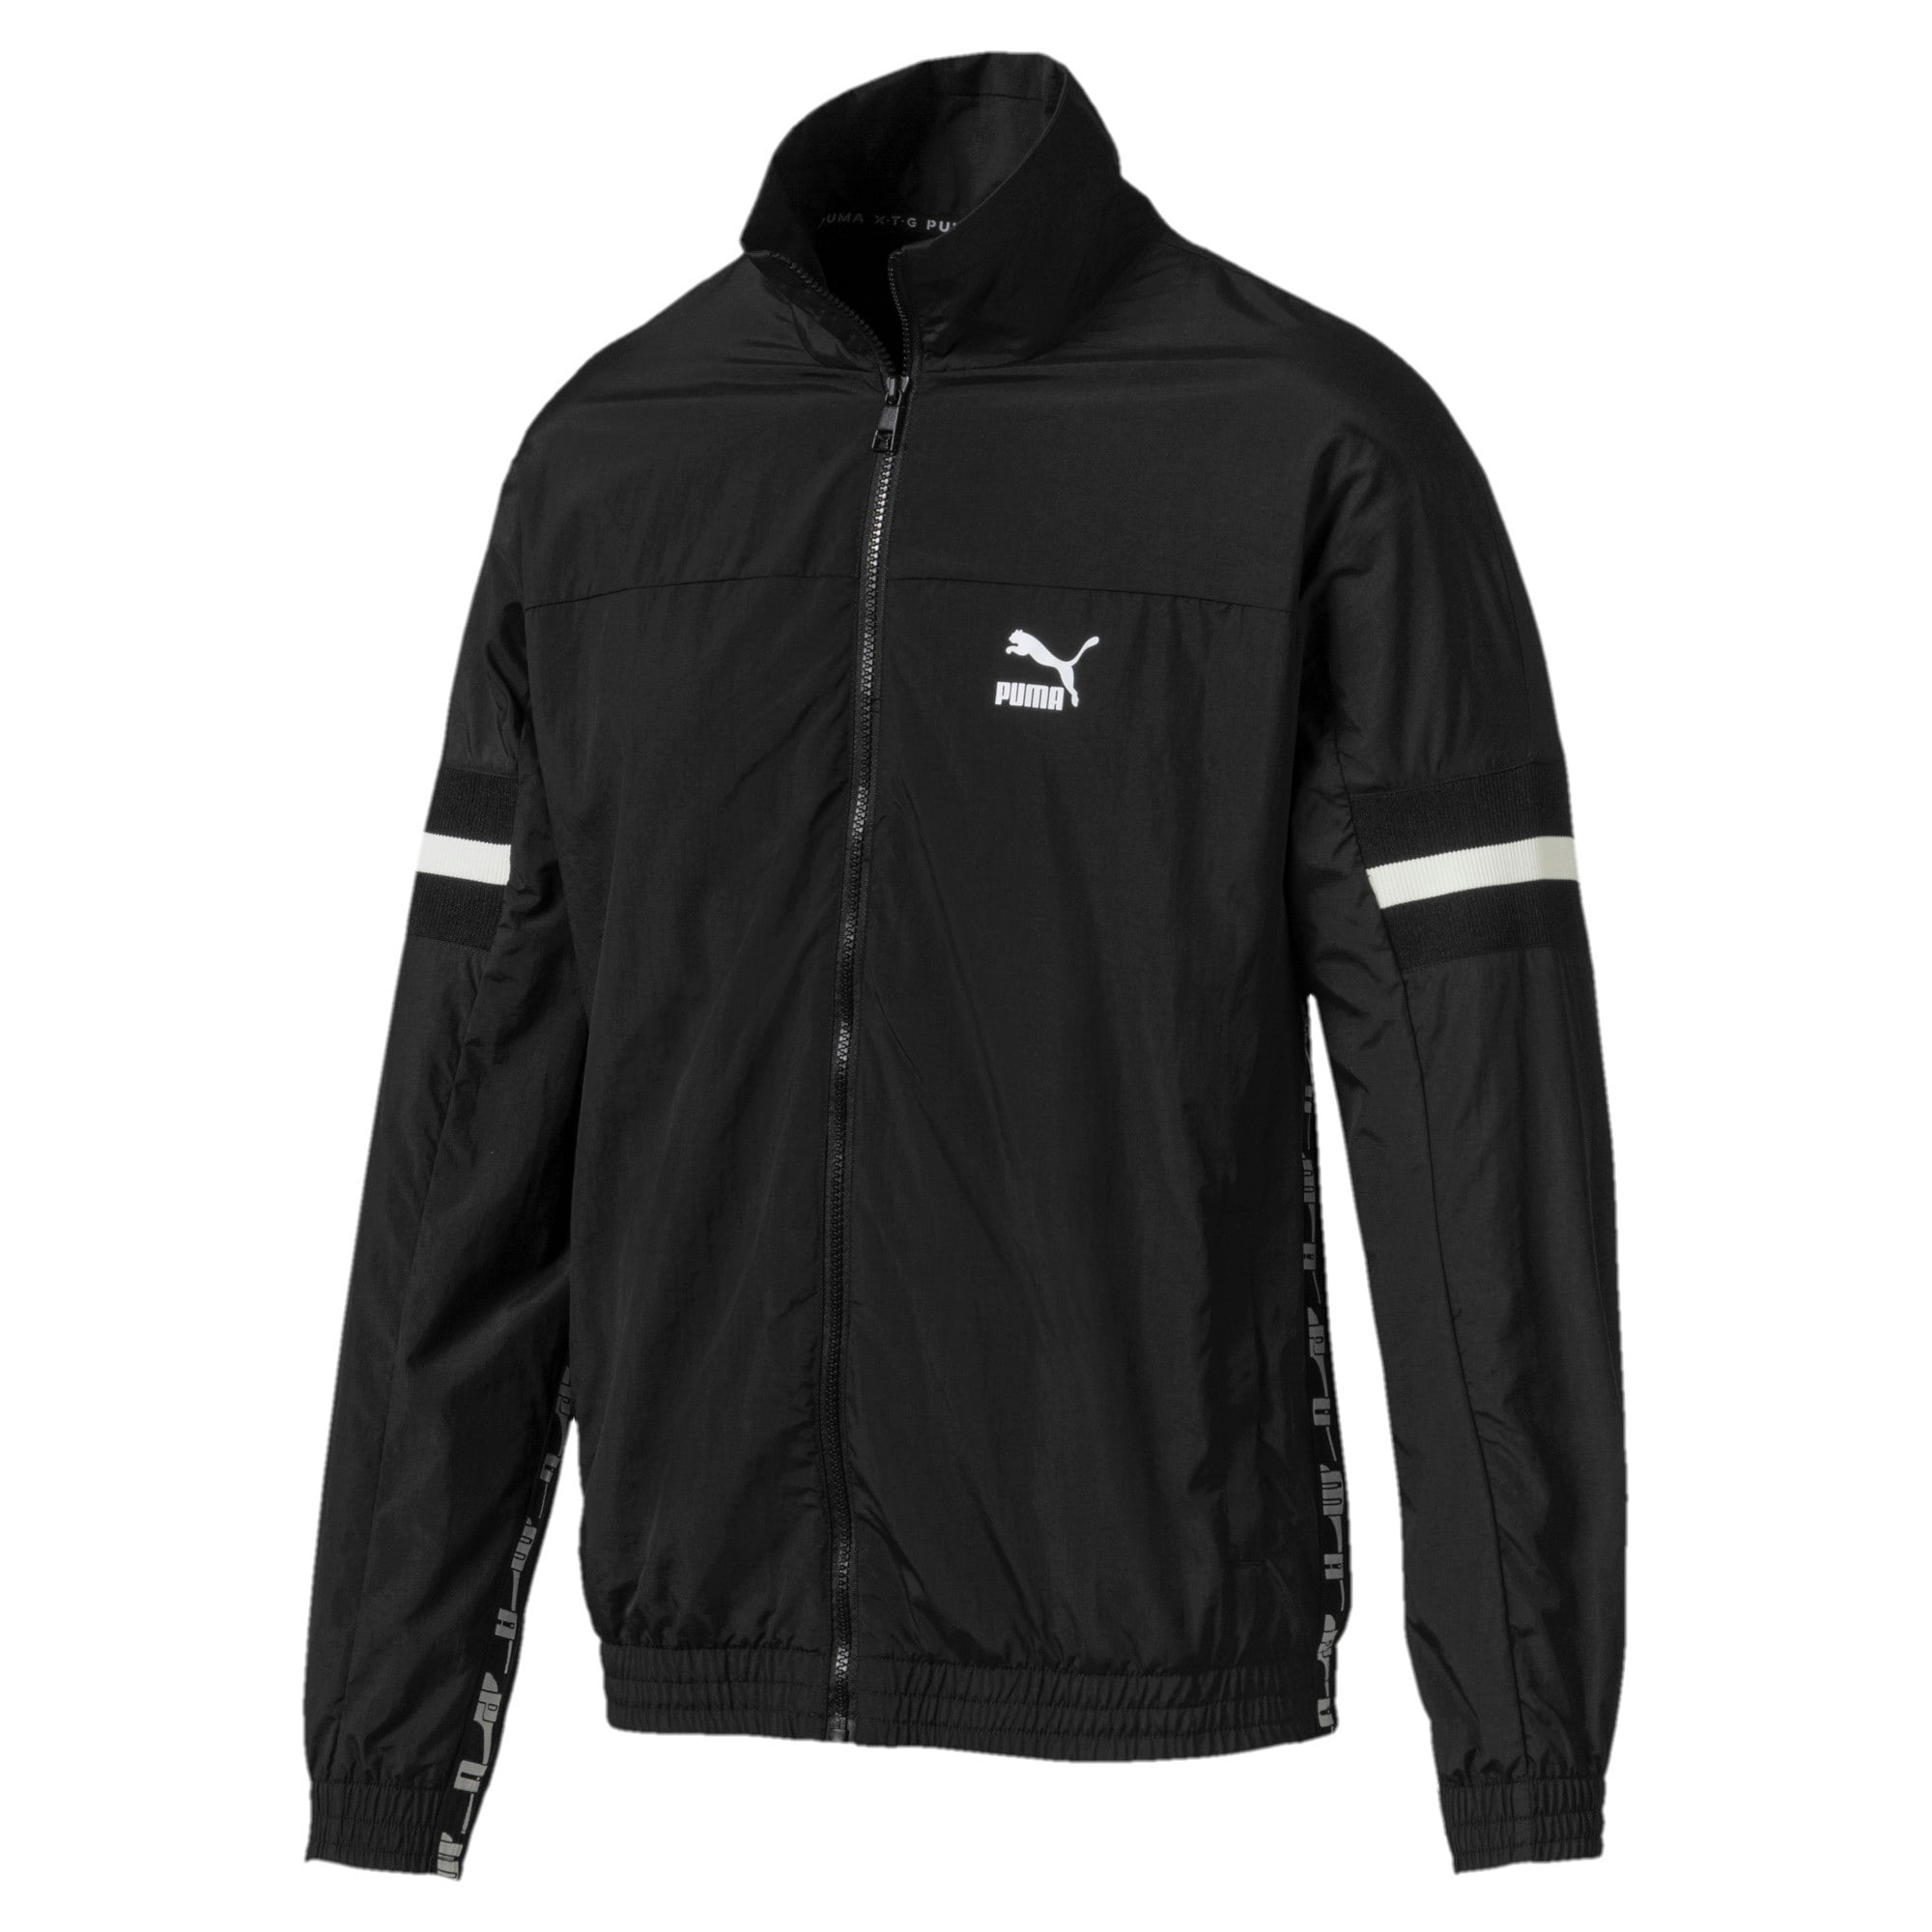 Thumbnail 4 of PUMA XTG Woven Men's Track Jacket, Puma Black, medium